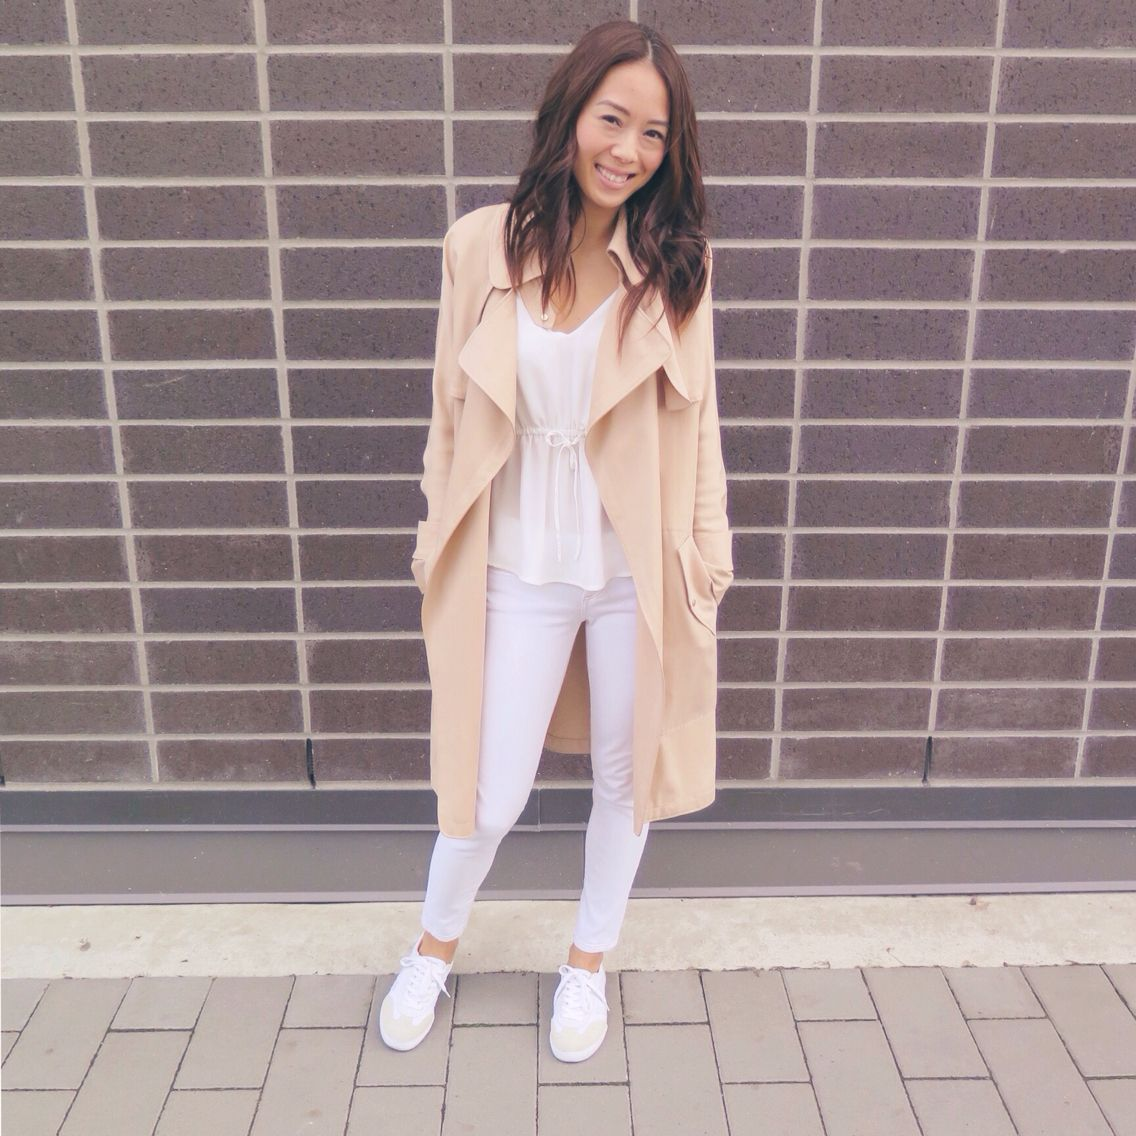 My style: Babaton Lawson drapy trench jacket and Warren camisole from Aritzia, Rag and Bone cropped skinny jeans, Veja sneakers